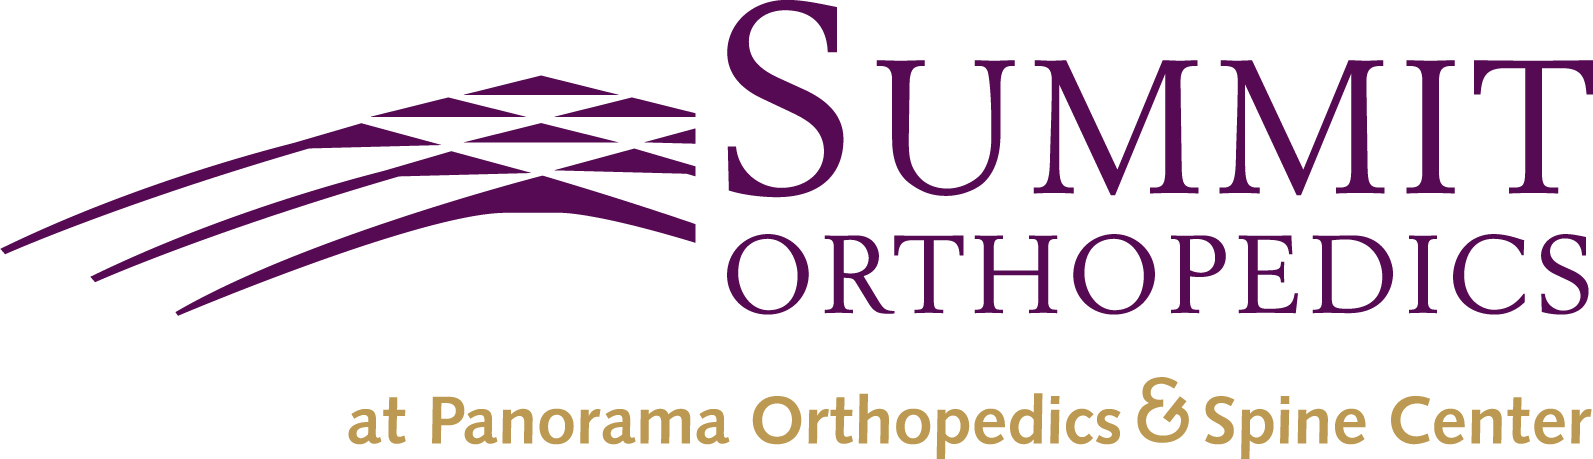 Summit-Orthopedics.jpg